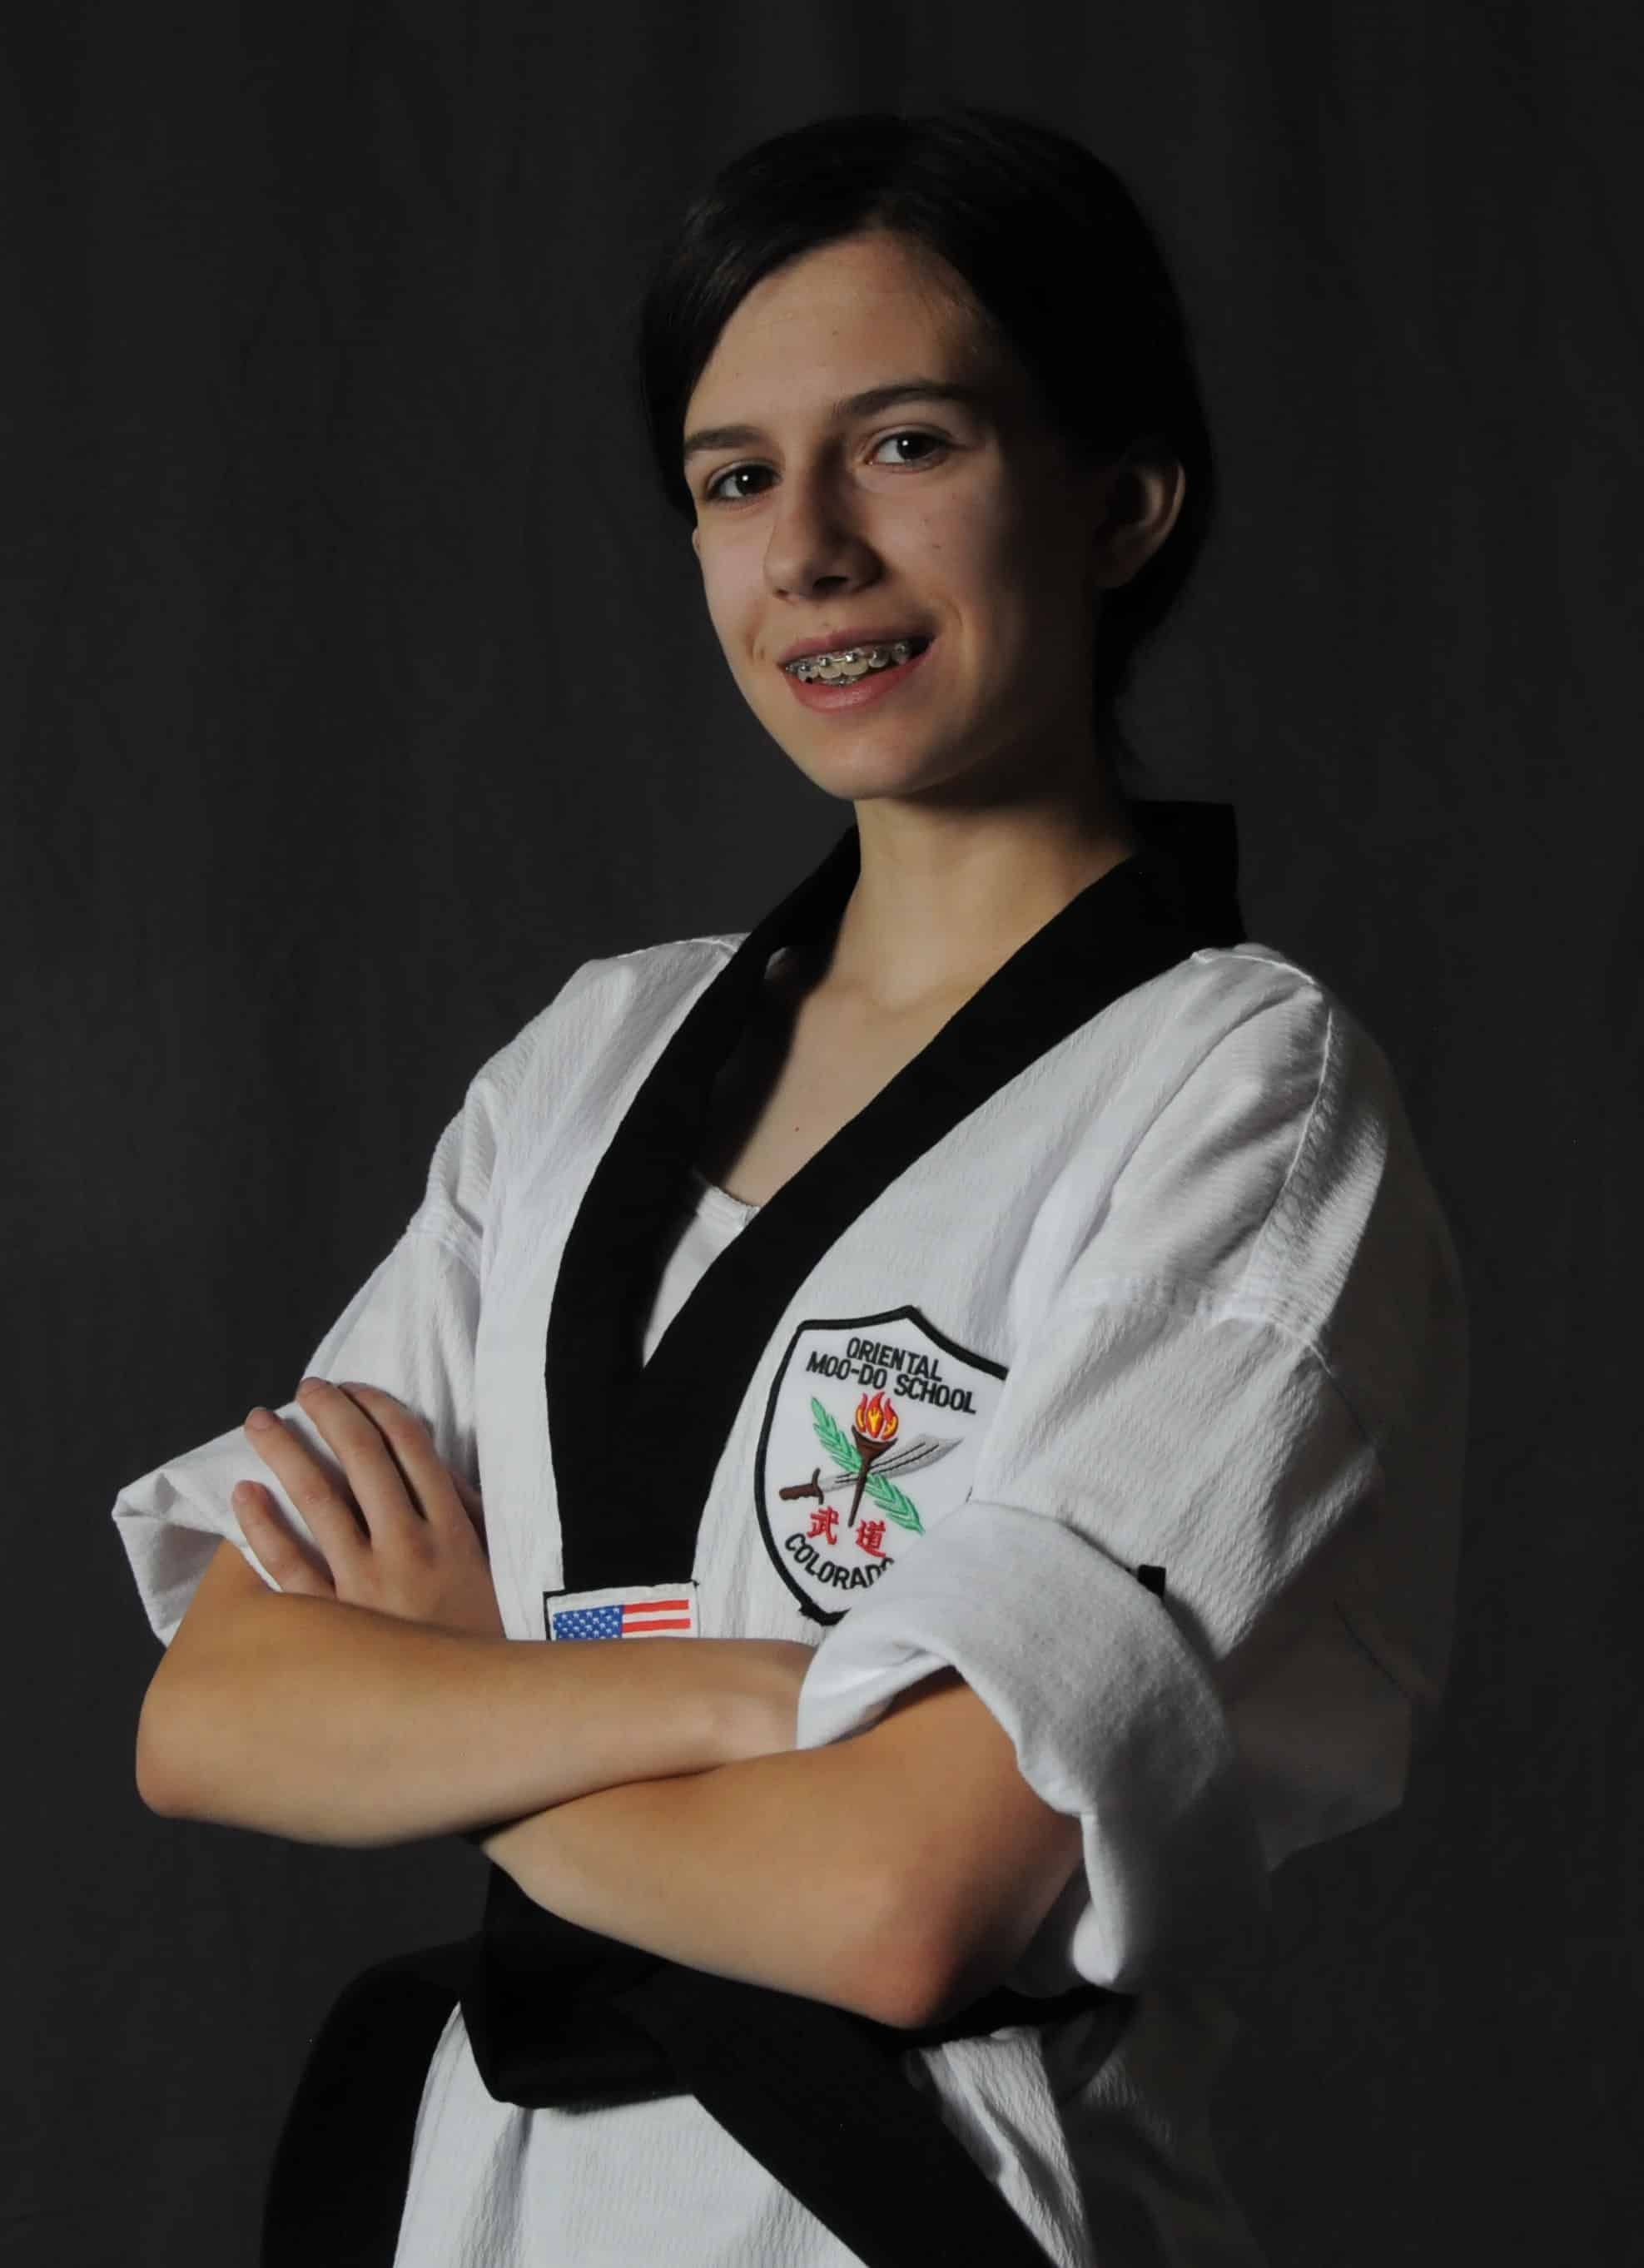 Christina Lucas, 2nd Degree Black Belt